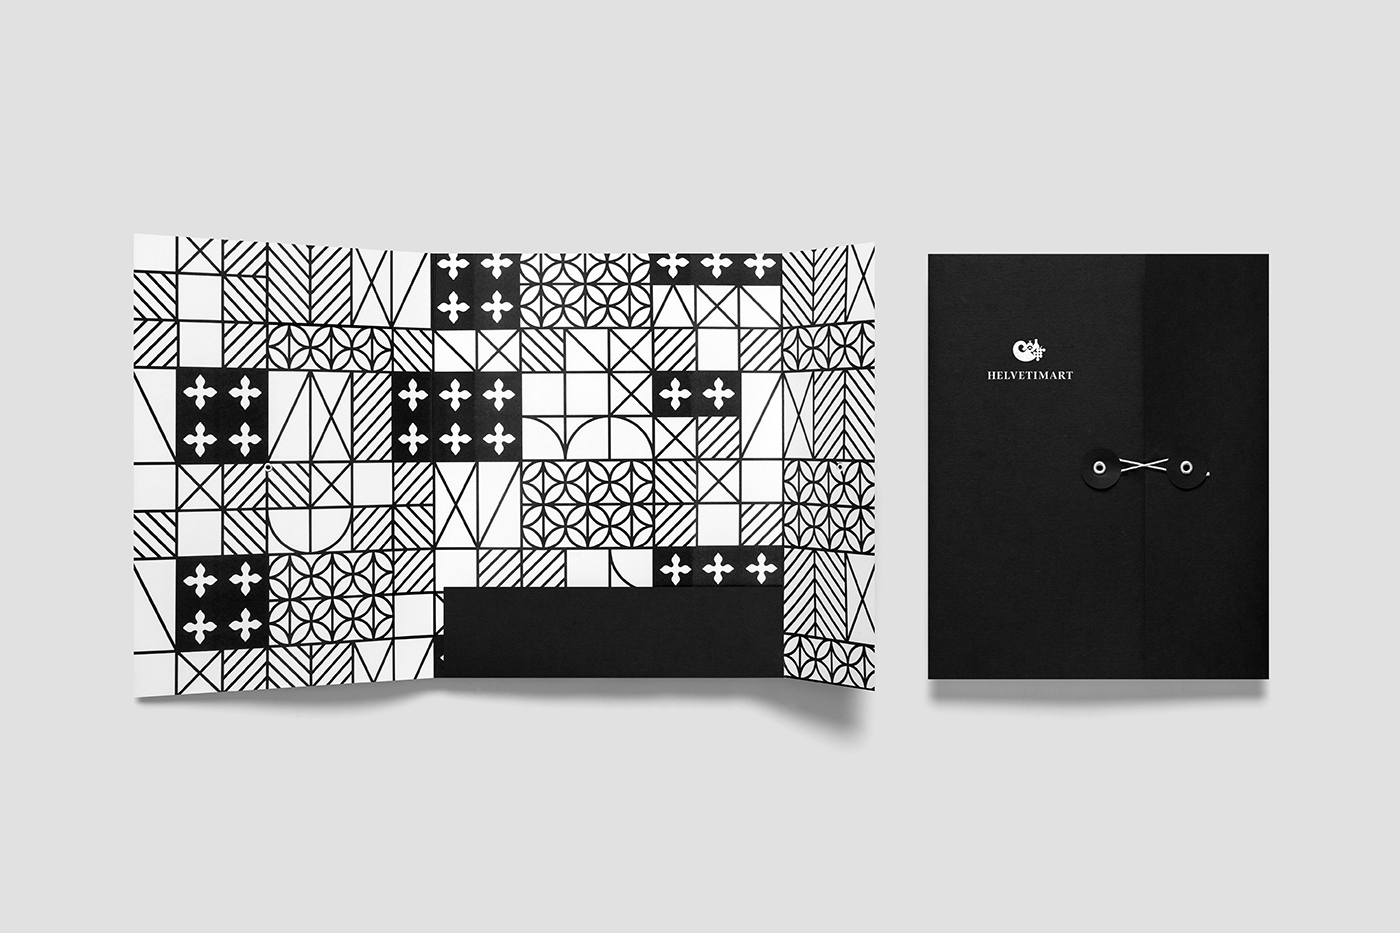 Brand identity and folder by Anagrama for Lausanne-based independent food and speciality supermarket Helvetimart